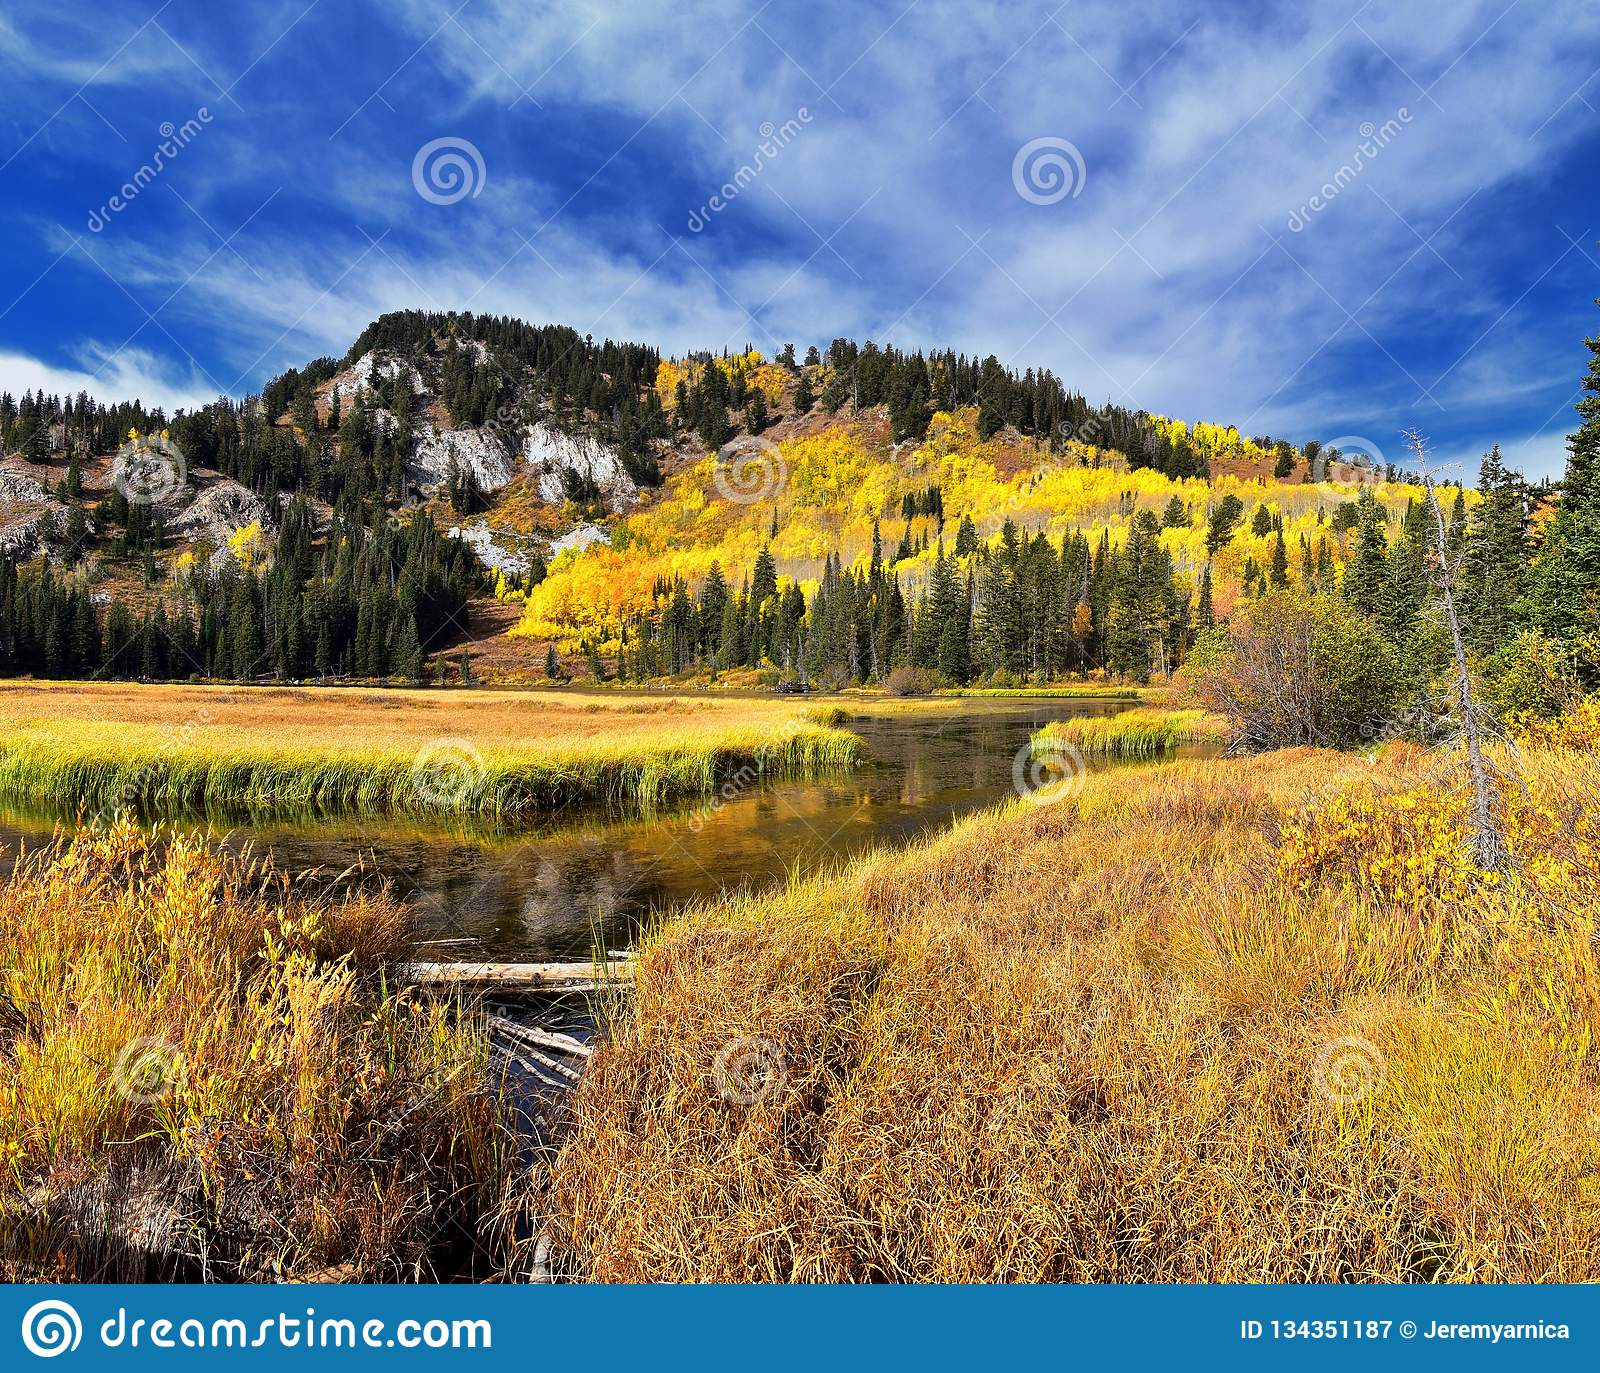 silver lake by solitude and brighton ski resort in big cottonwood